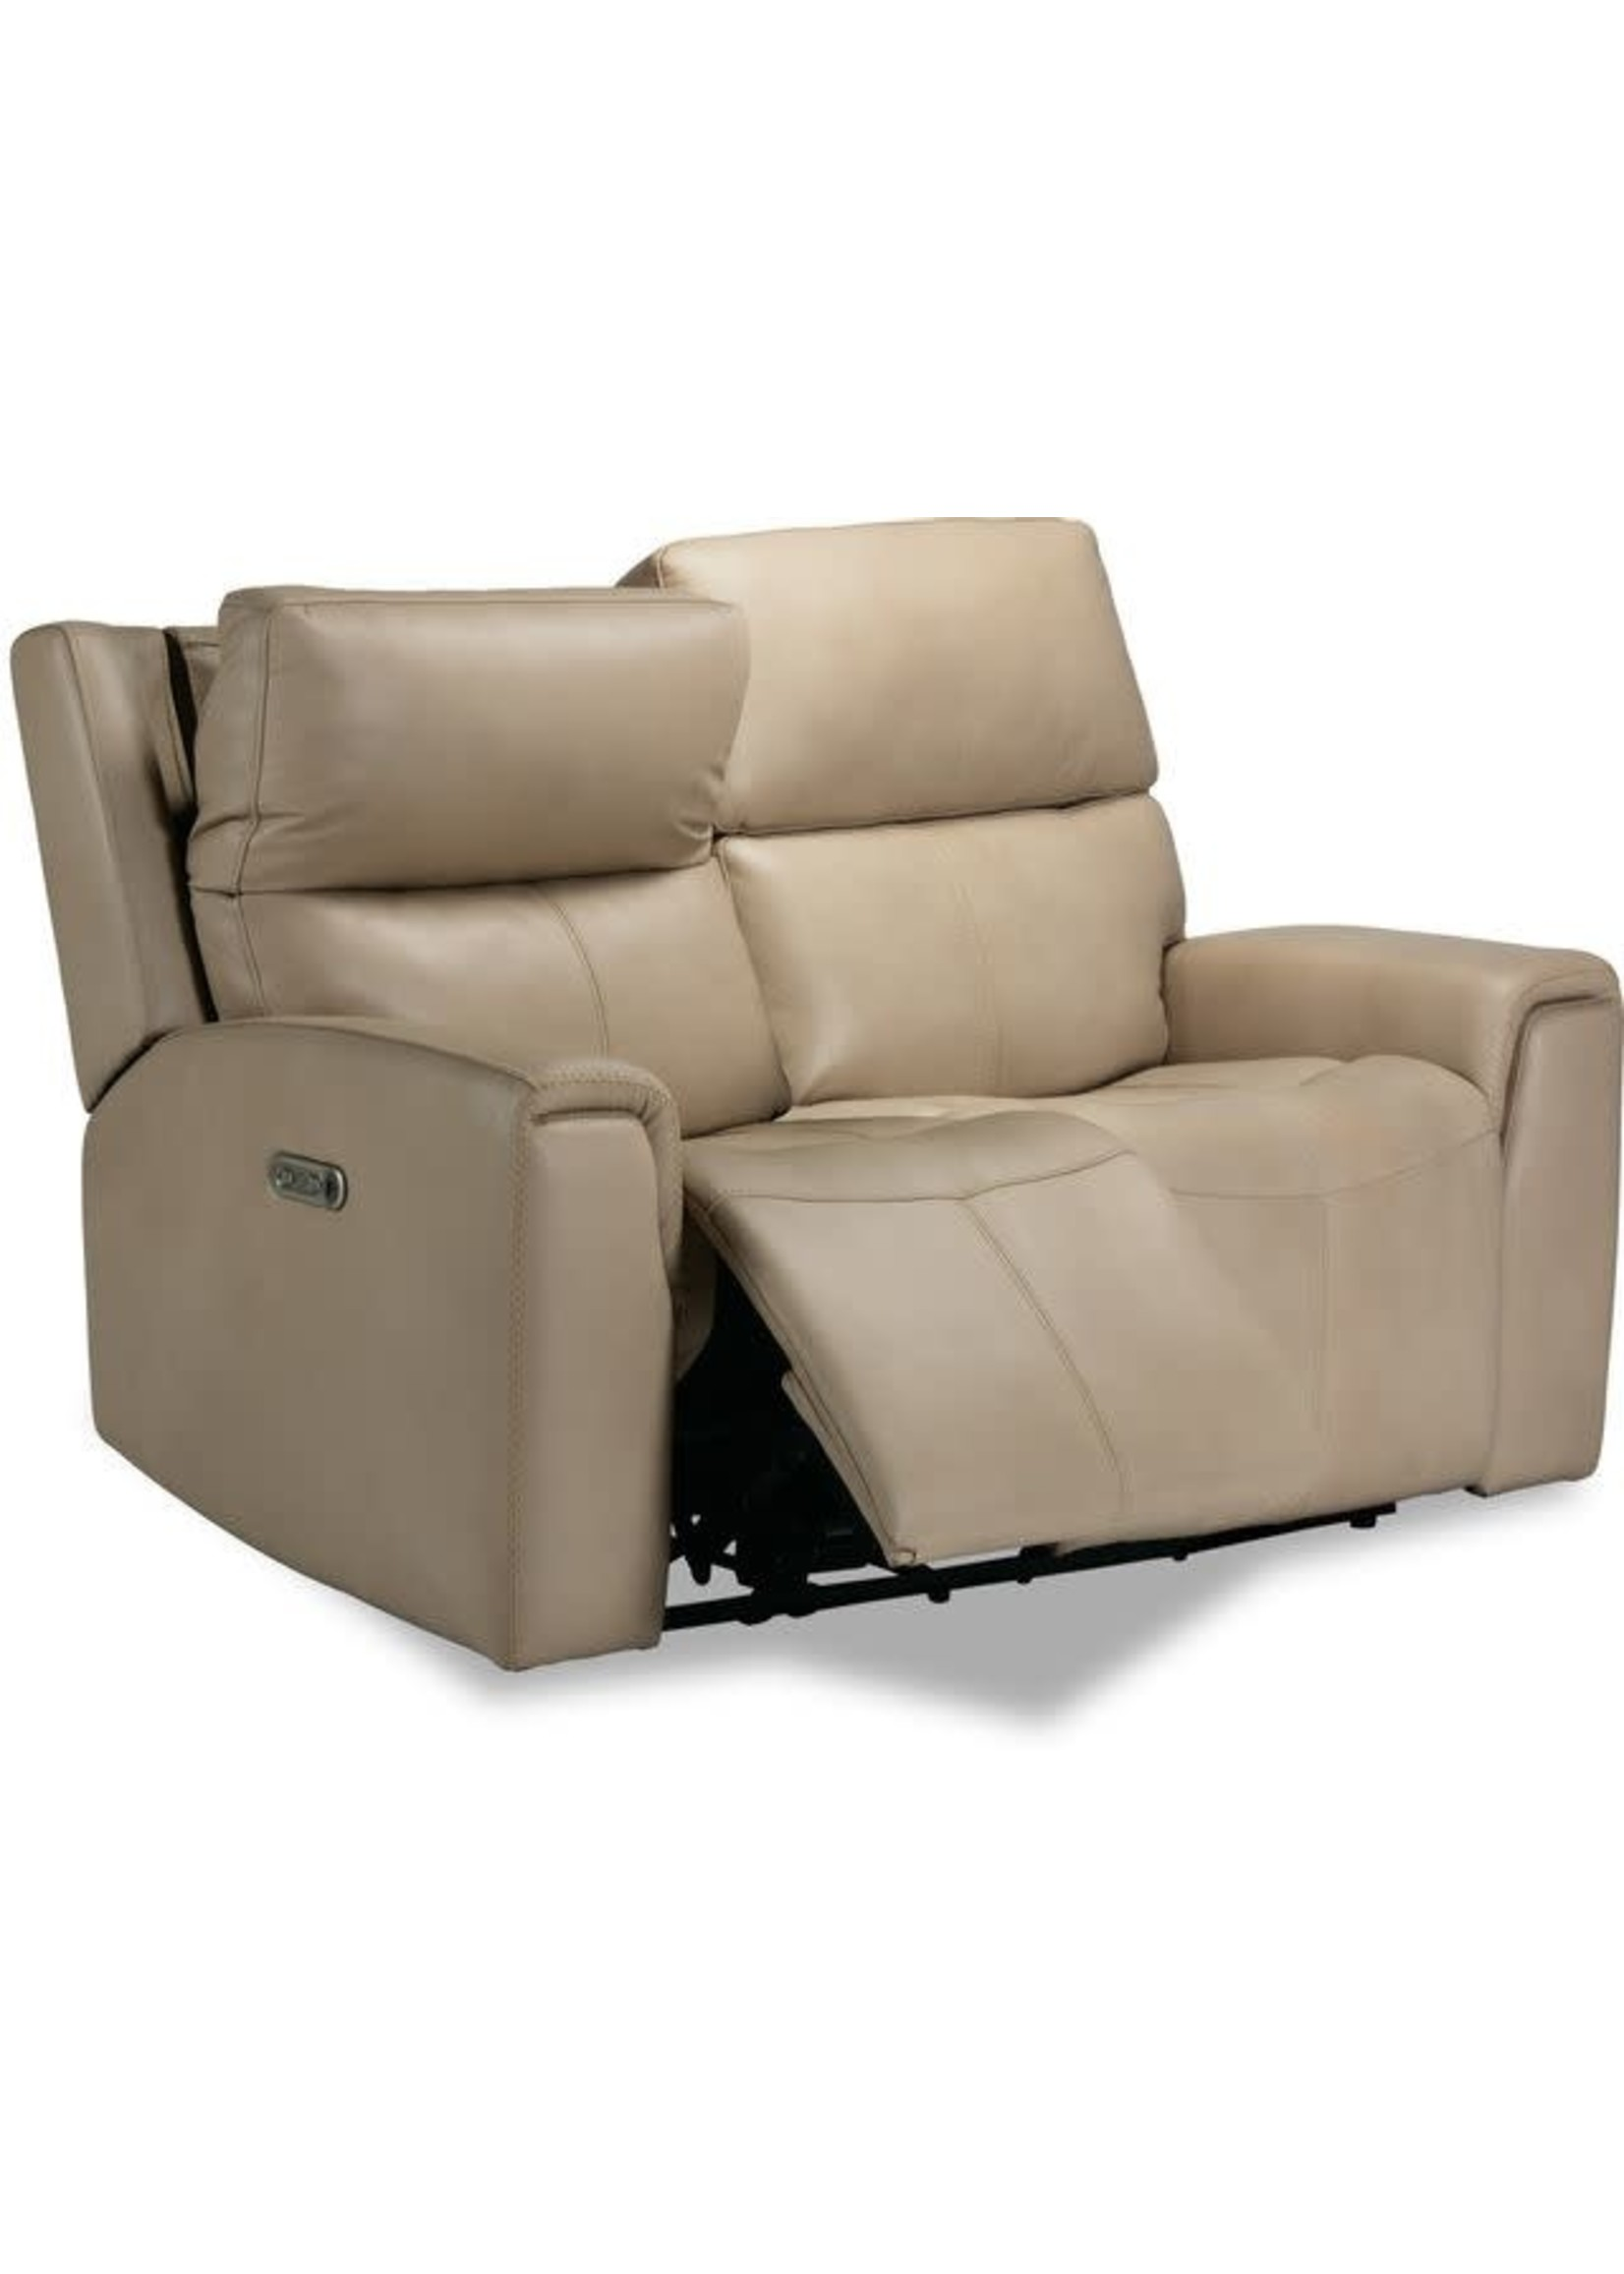 JARVIS PWR RECLINING LOVESEAT W/ PWR HDRST